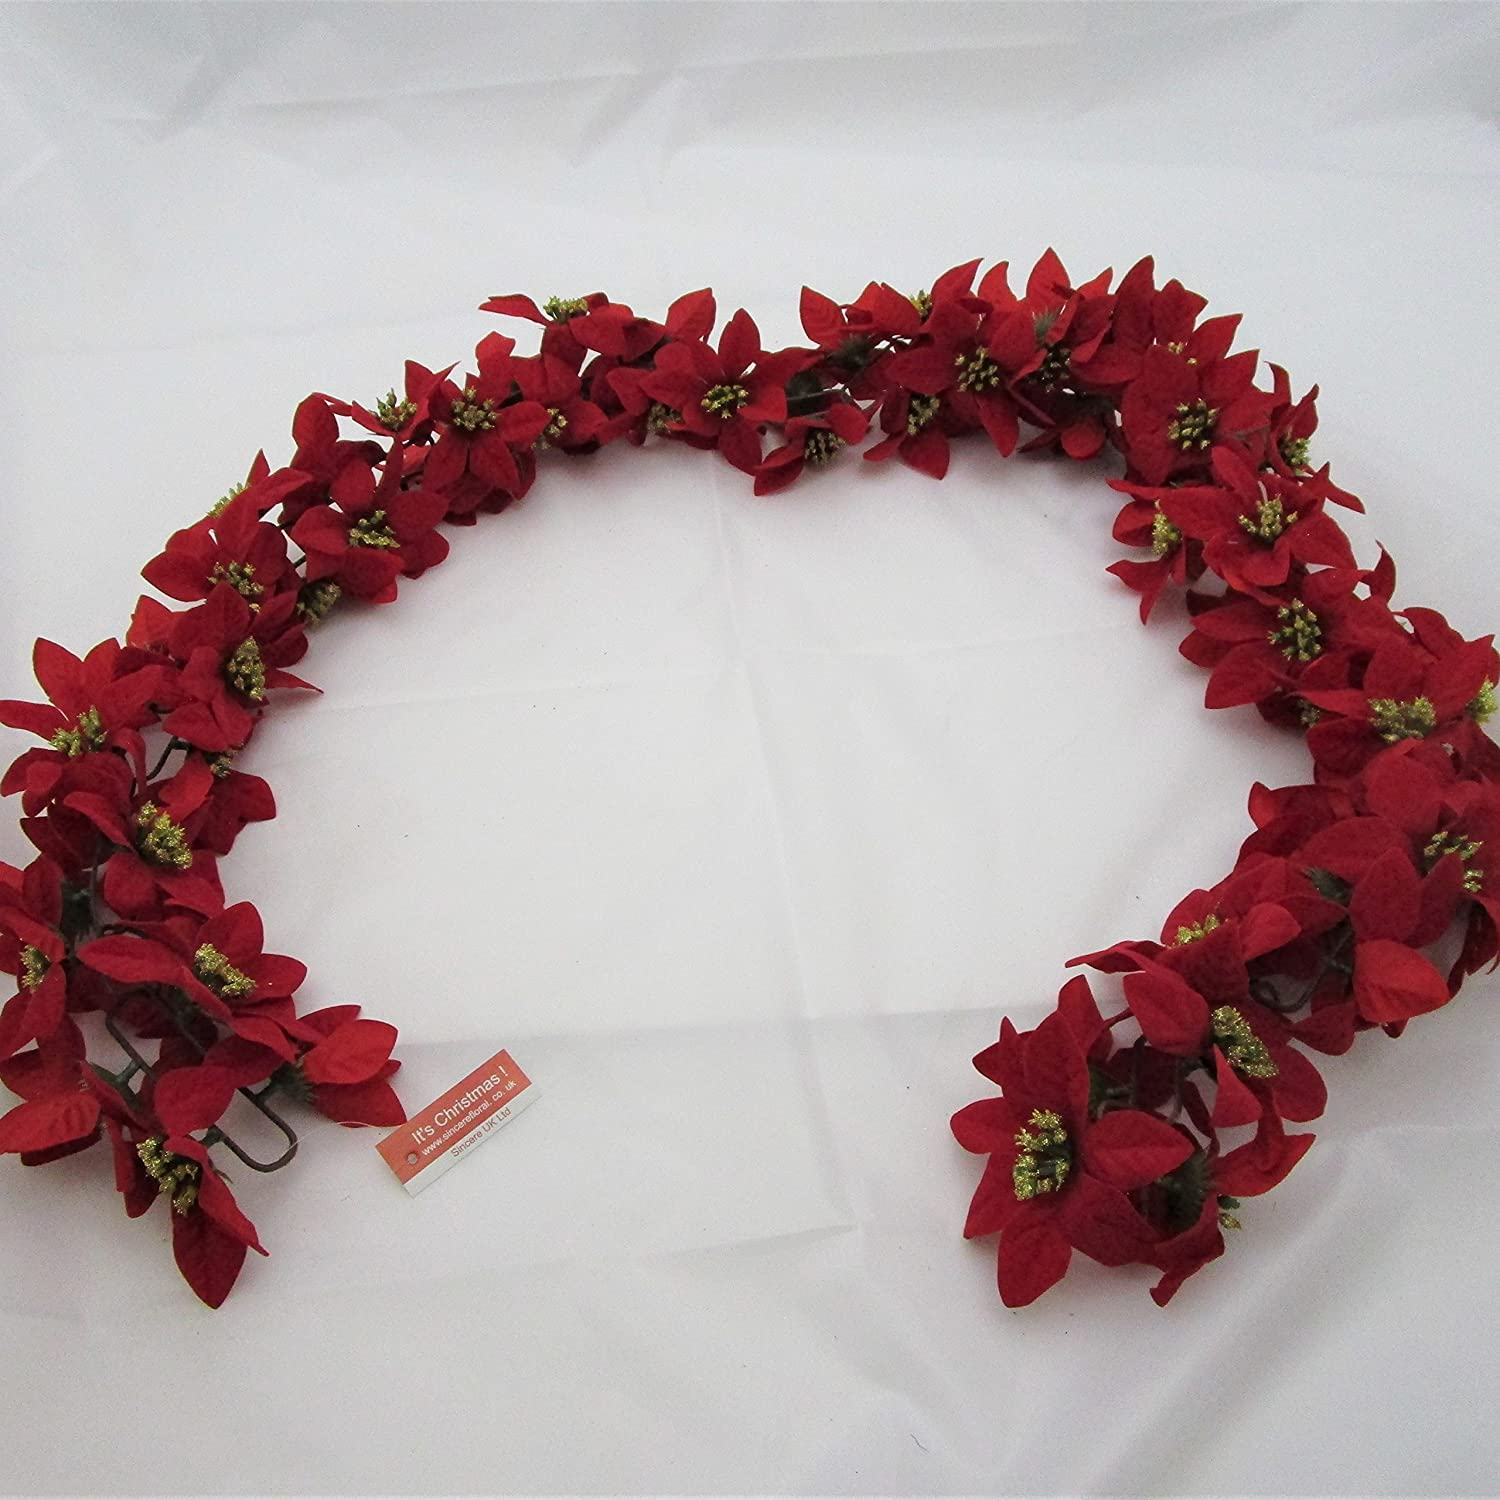 180 Cm Full Thick Red Poinsettia Garland Christmas Fireplace Decoration